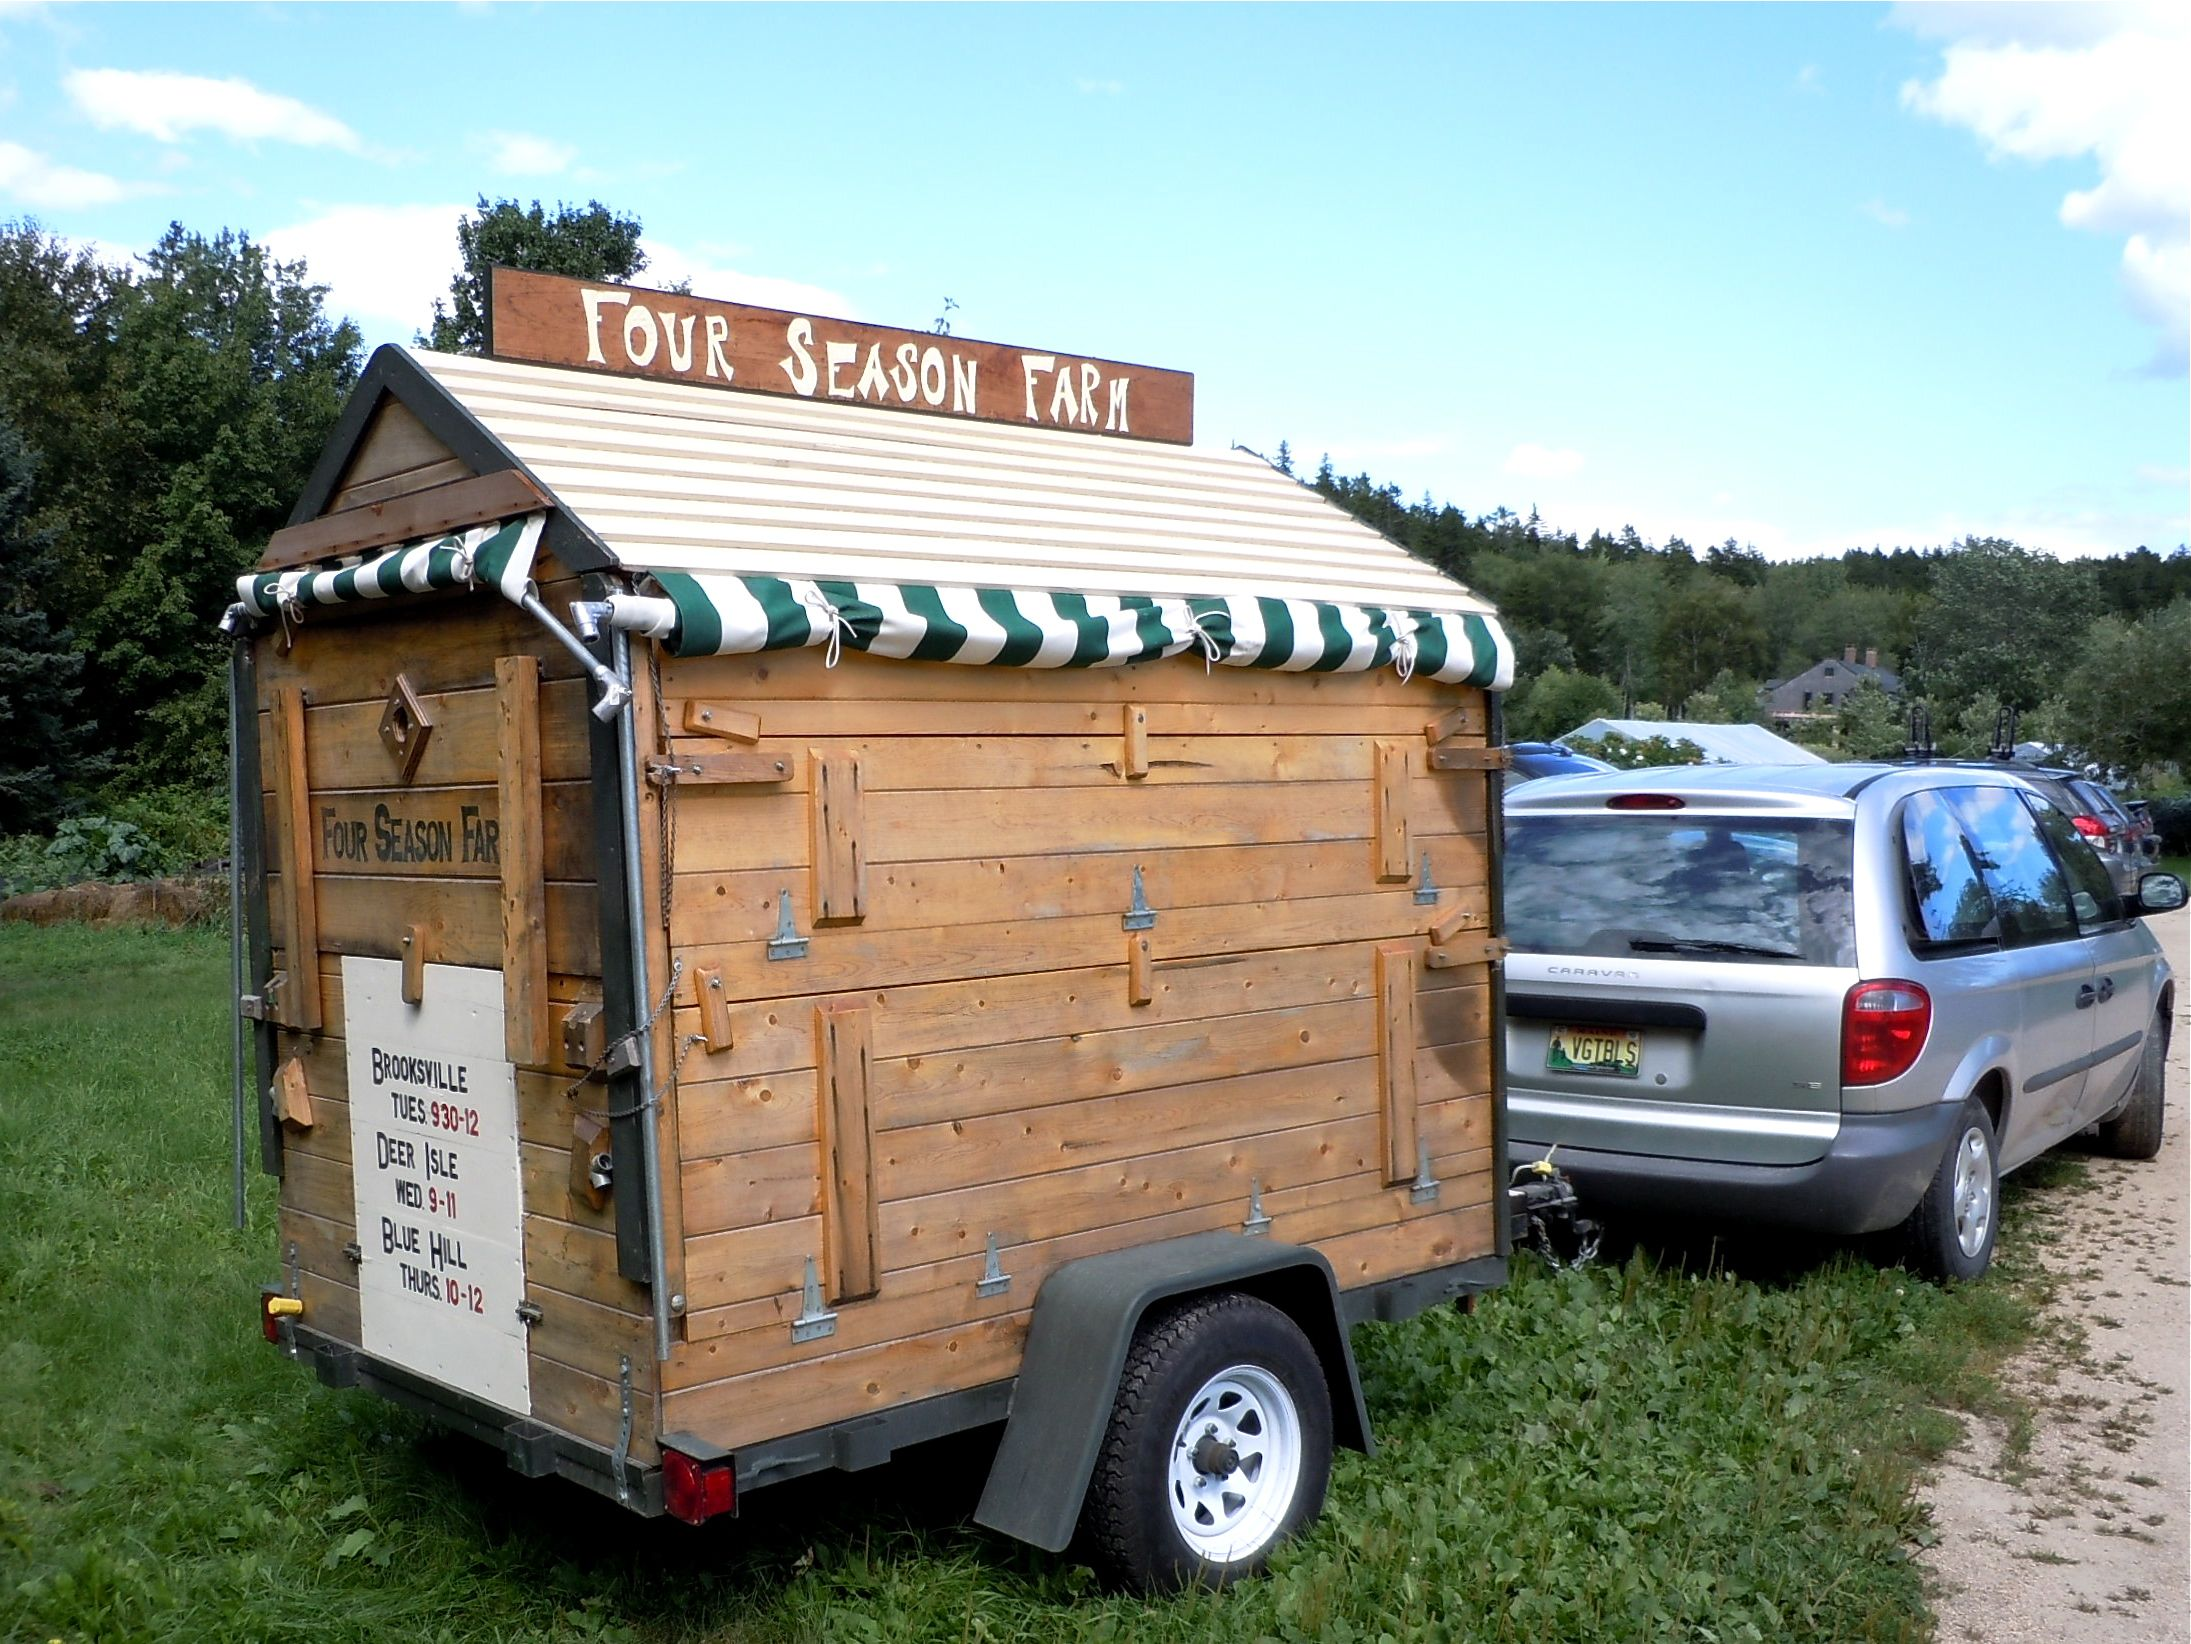 Farmers Market Portable Toilet : Season farm visit little house on the urban prairie